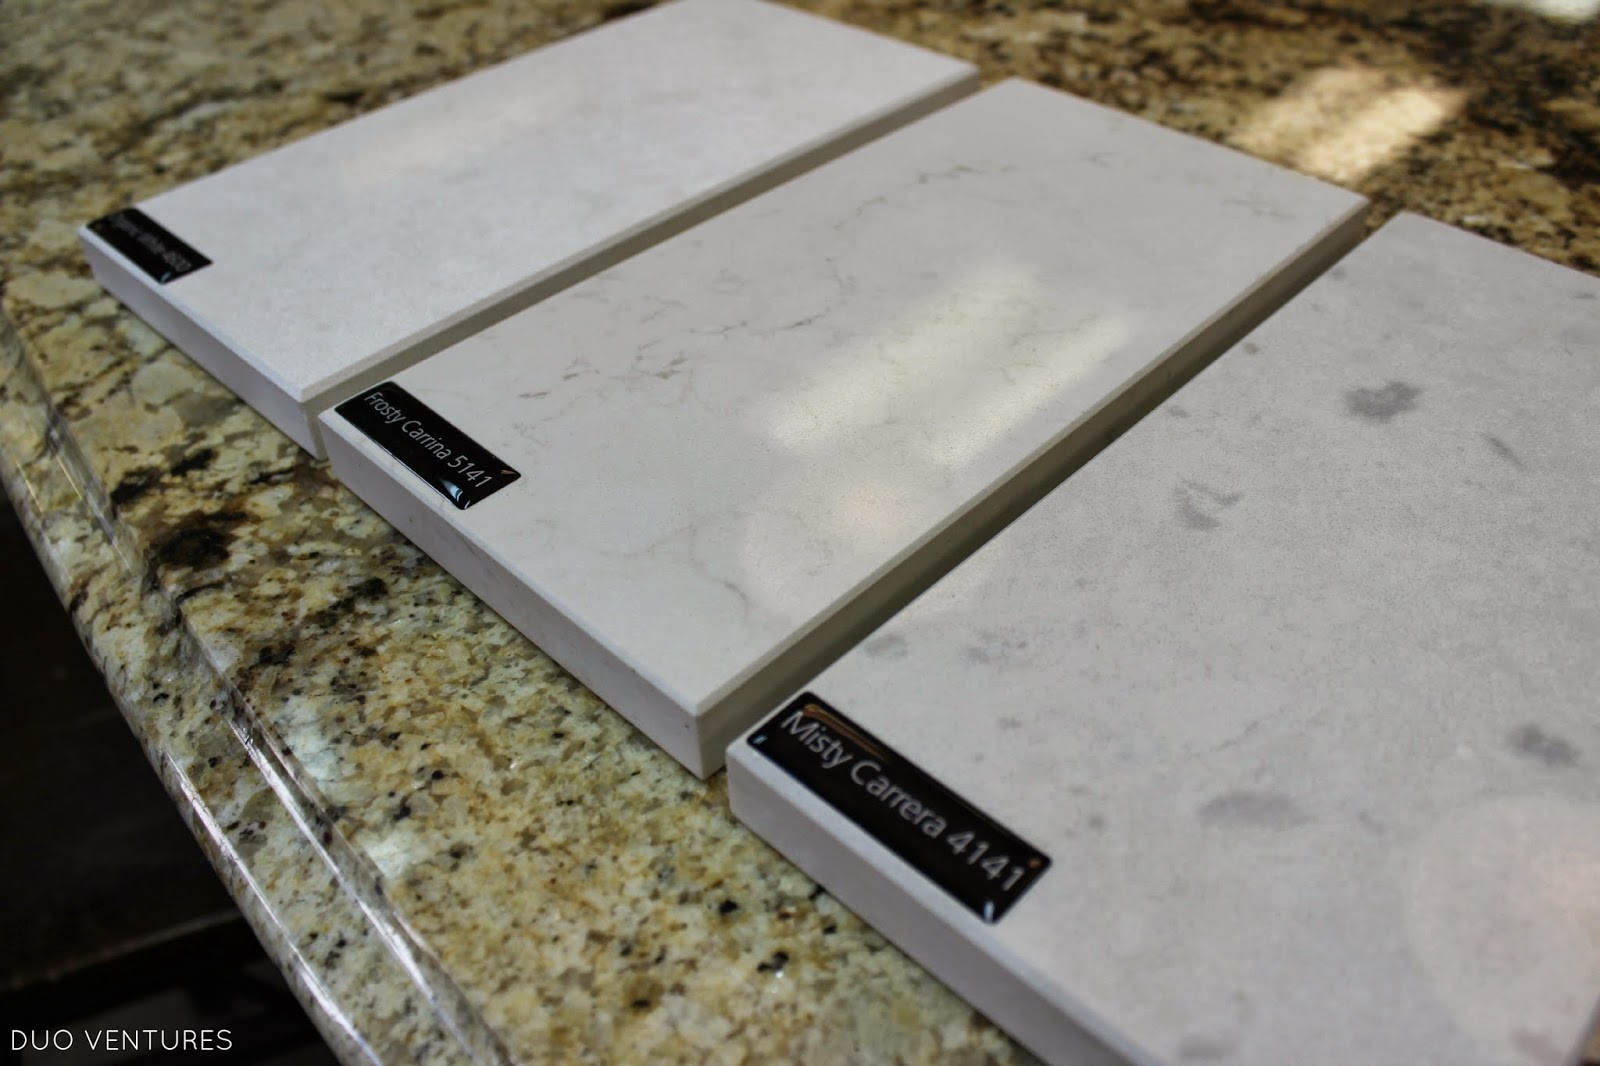 Quartz Countertop Brands : Its difficult to get 100% accurate representations of the colors ...